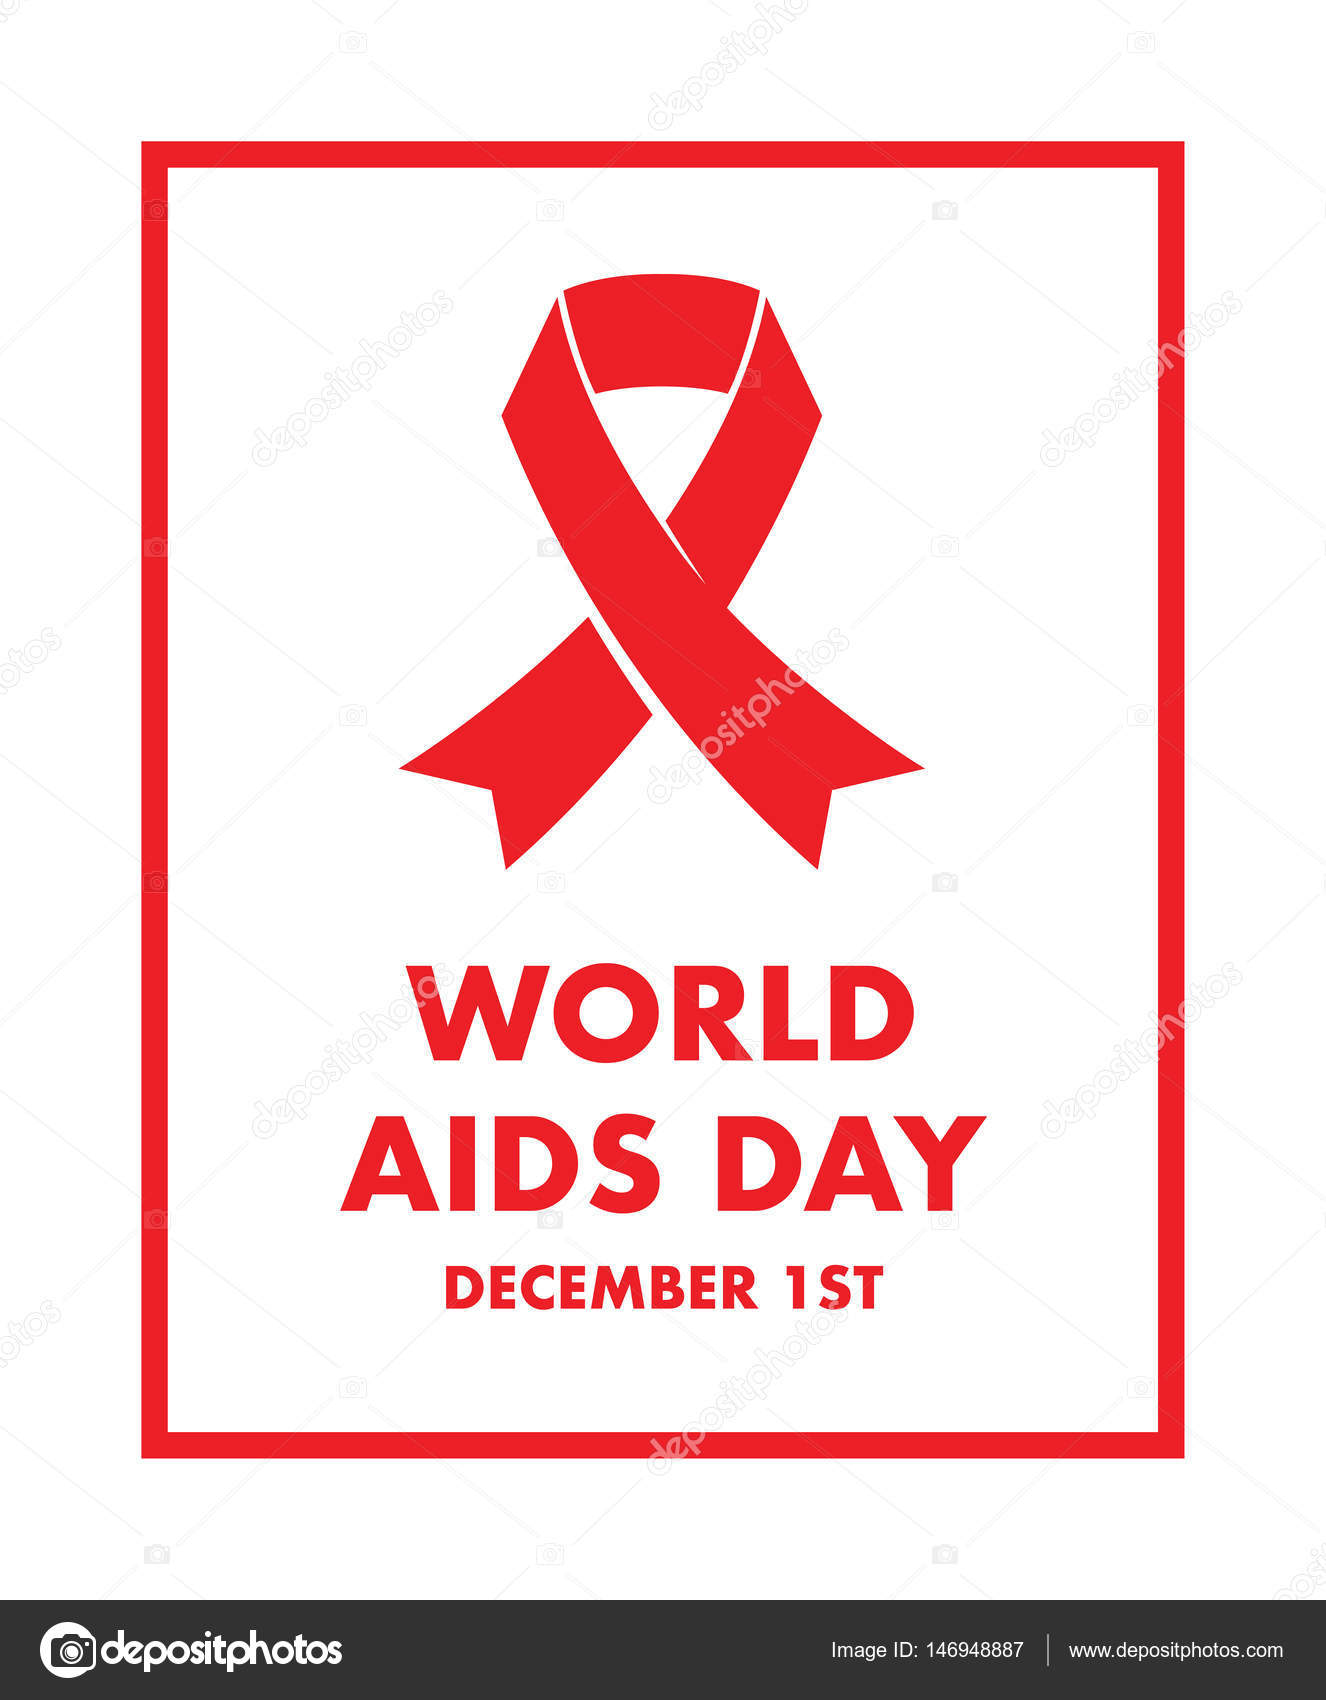 world aids day backgrounds - photo #43